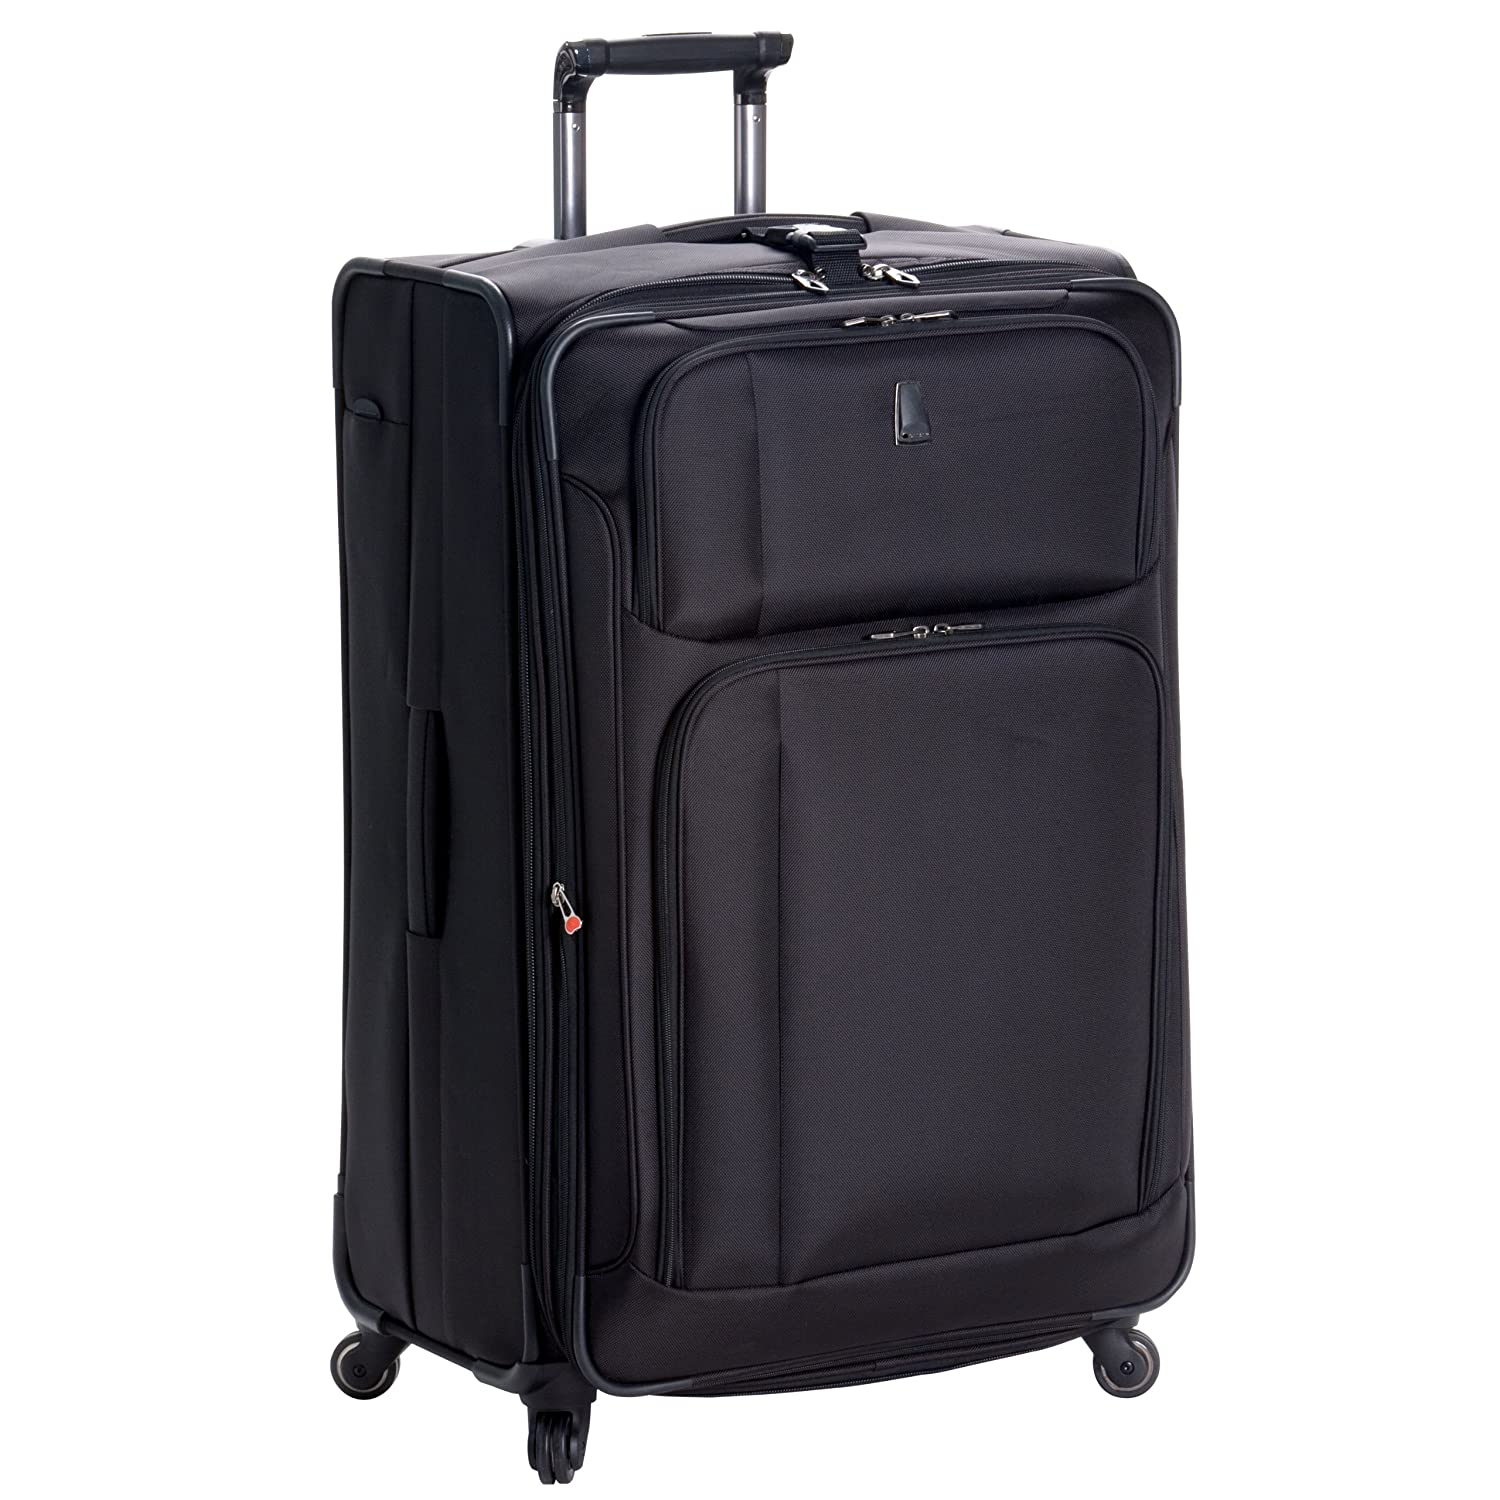 Amazon.com | Delsey Luggage Helium Breeze 3.0 Lightweight 4 Wheel Spinner Expandable Upright, Black, 30 Inch | Suitcases